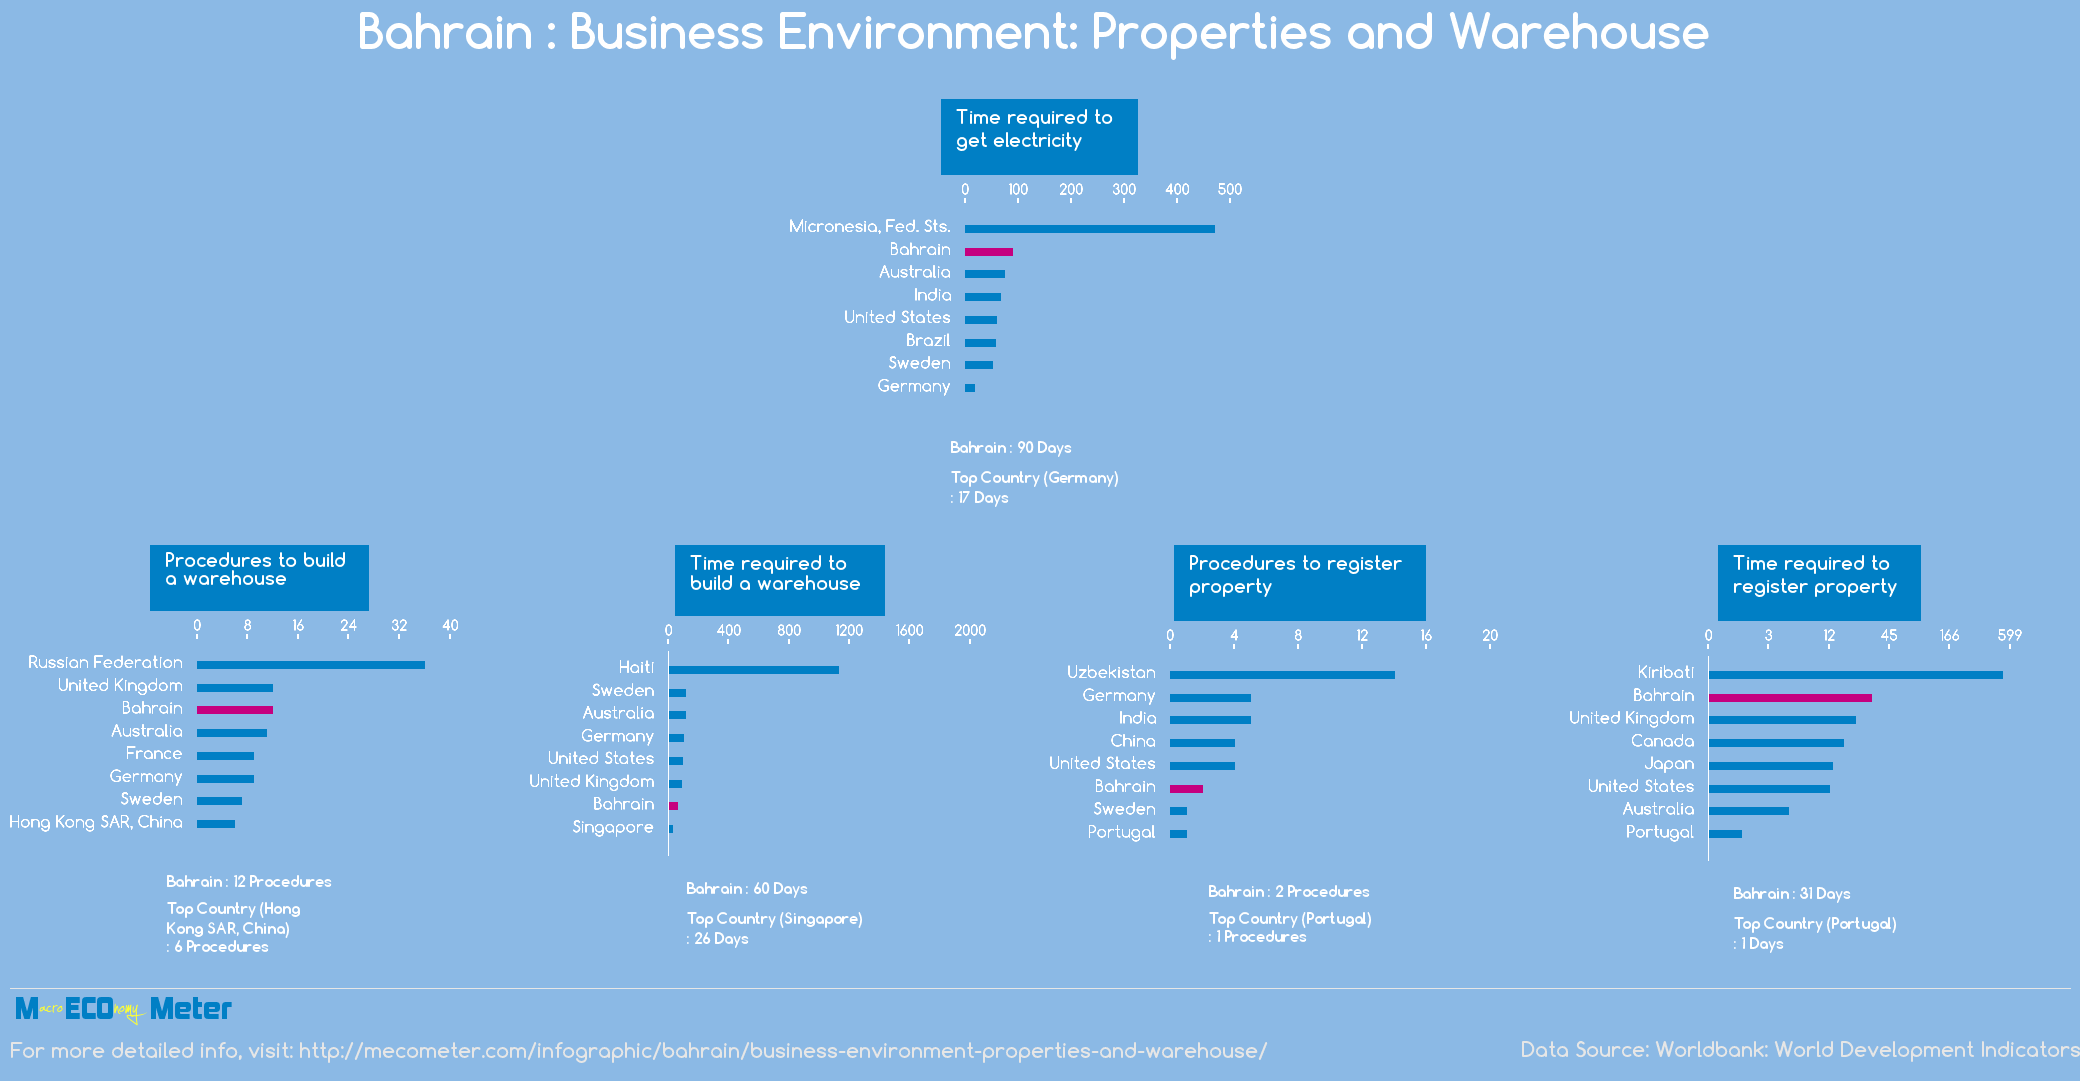 Bahrain : Business Environment: Properties and Warehouse